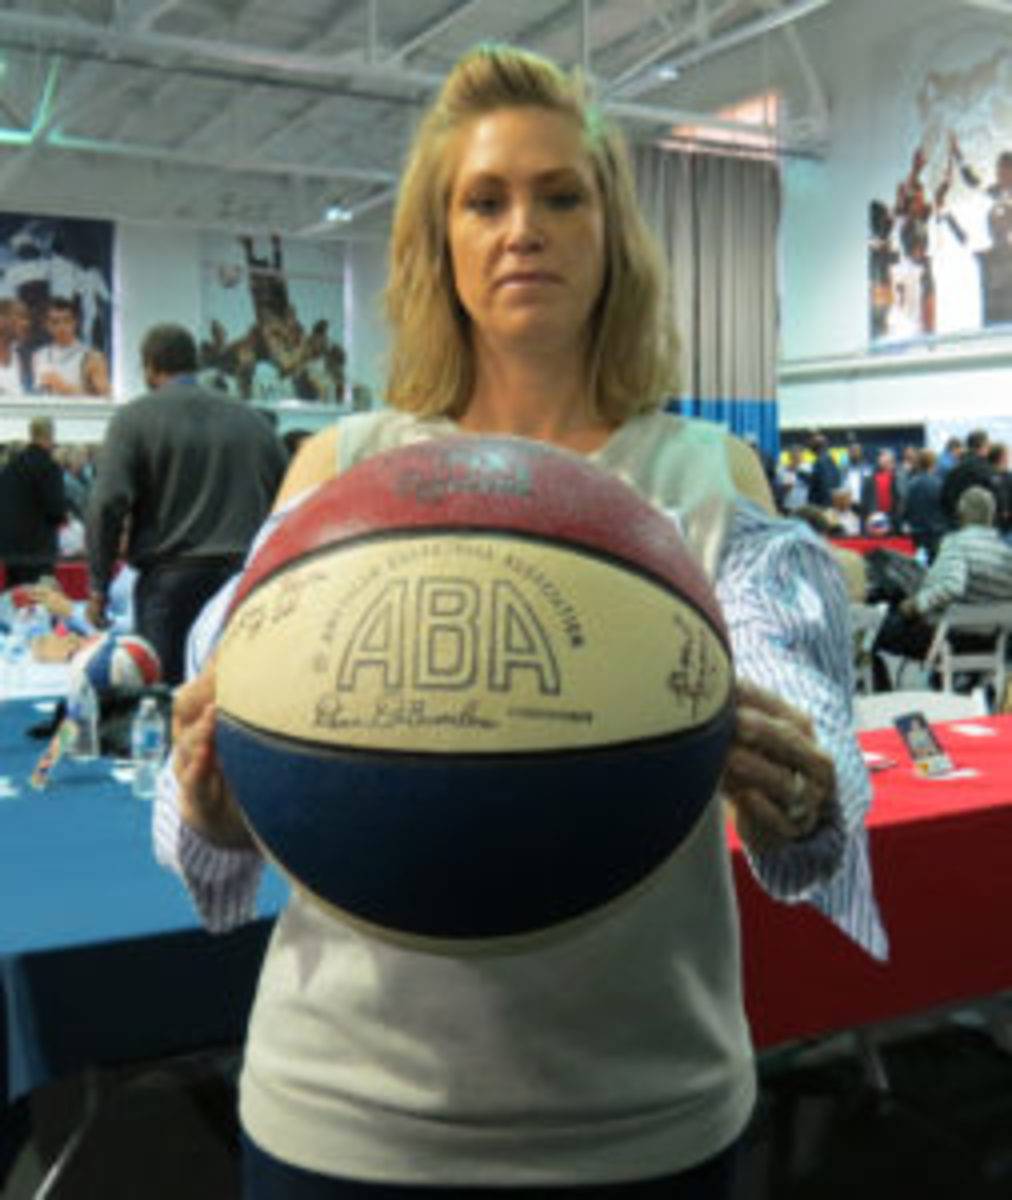 The daughter of former ABA player Grant Simmons collected autographs for her father on an original ABA basketball.